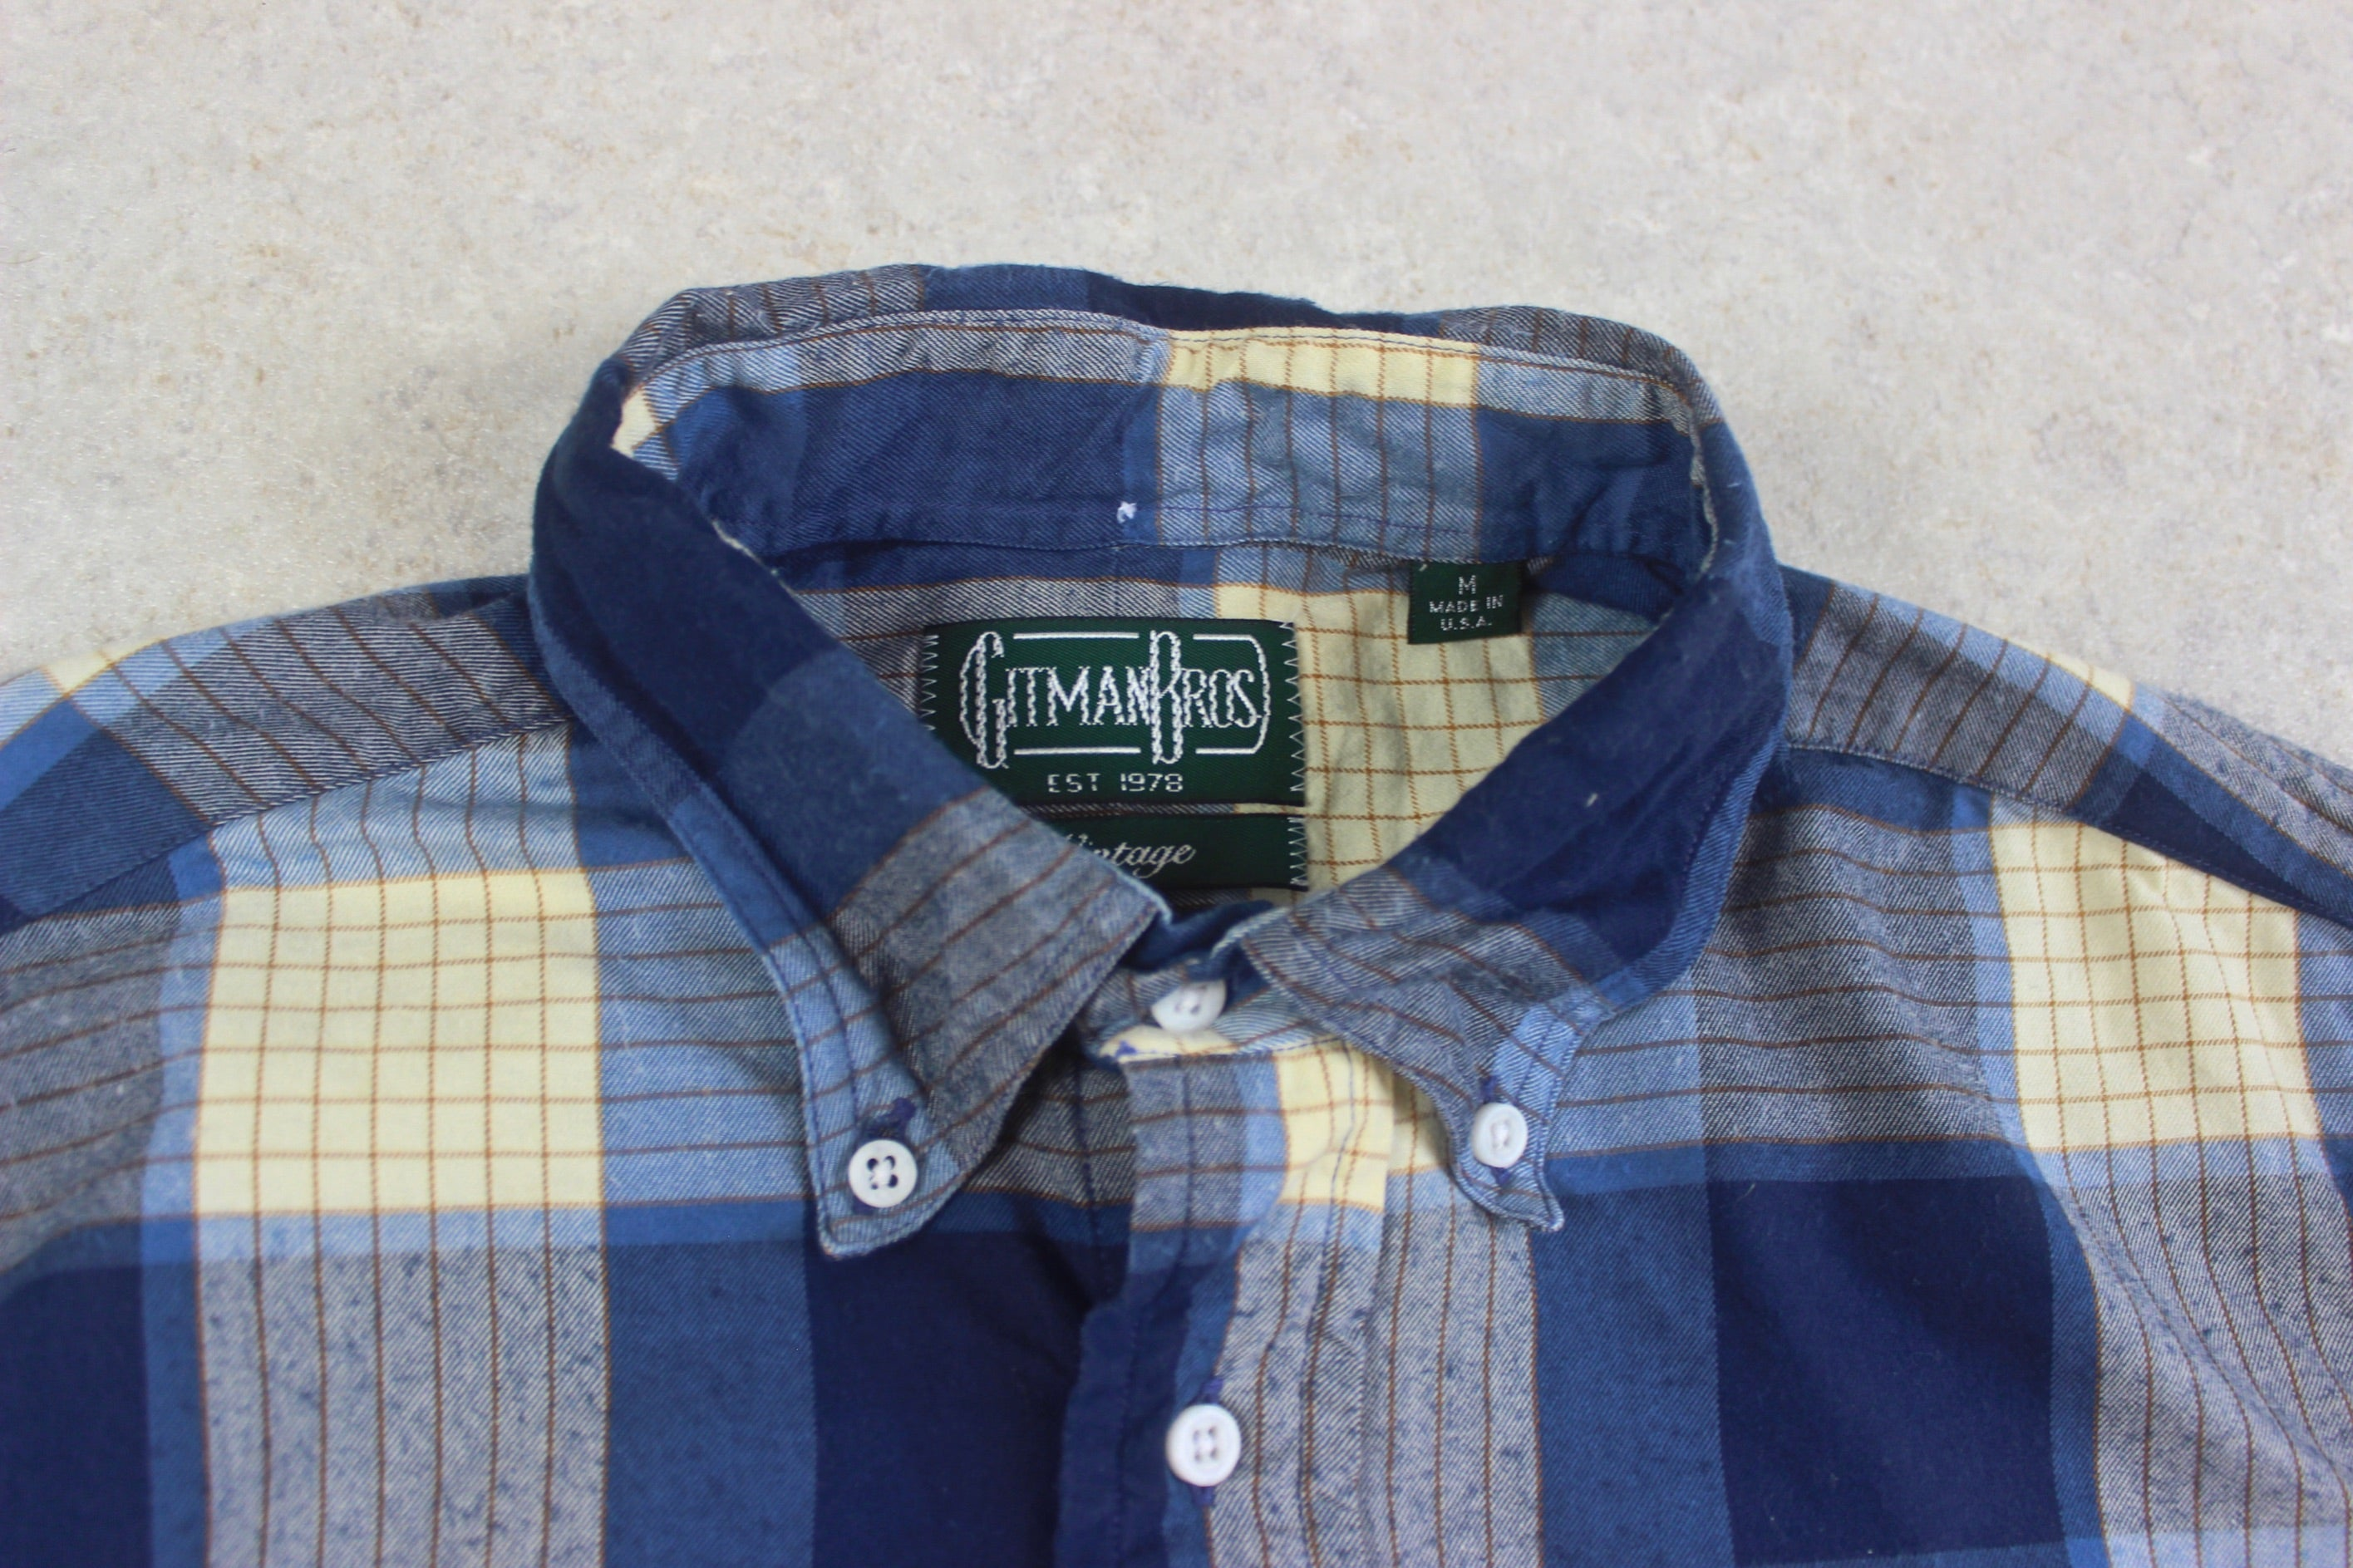 Gitman Bros Vintage - Shirt - Blue/Cream Check - Medium